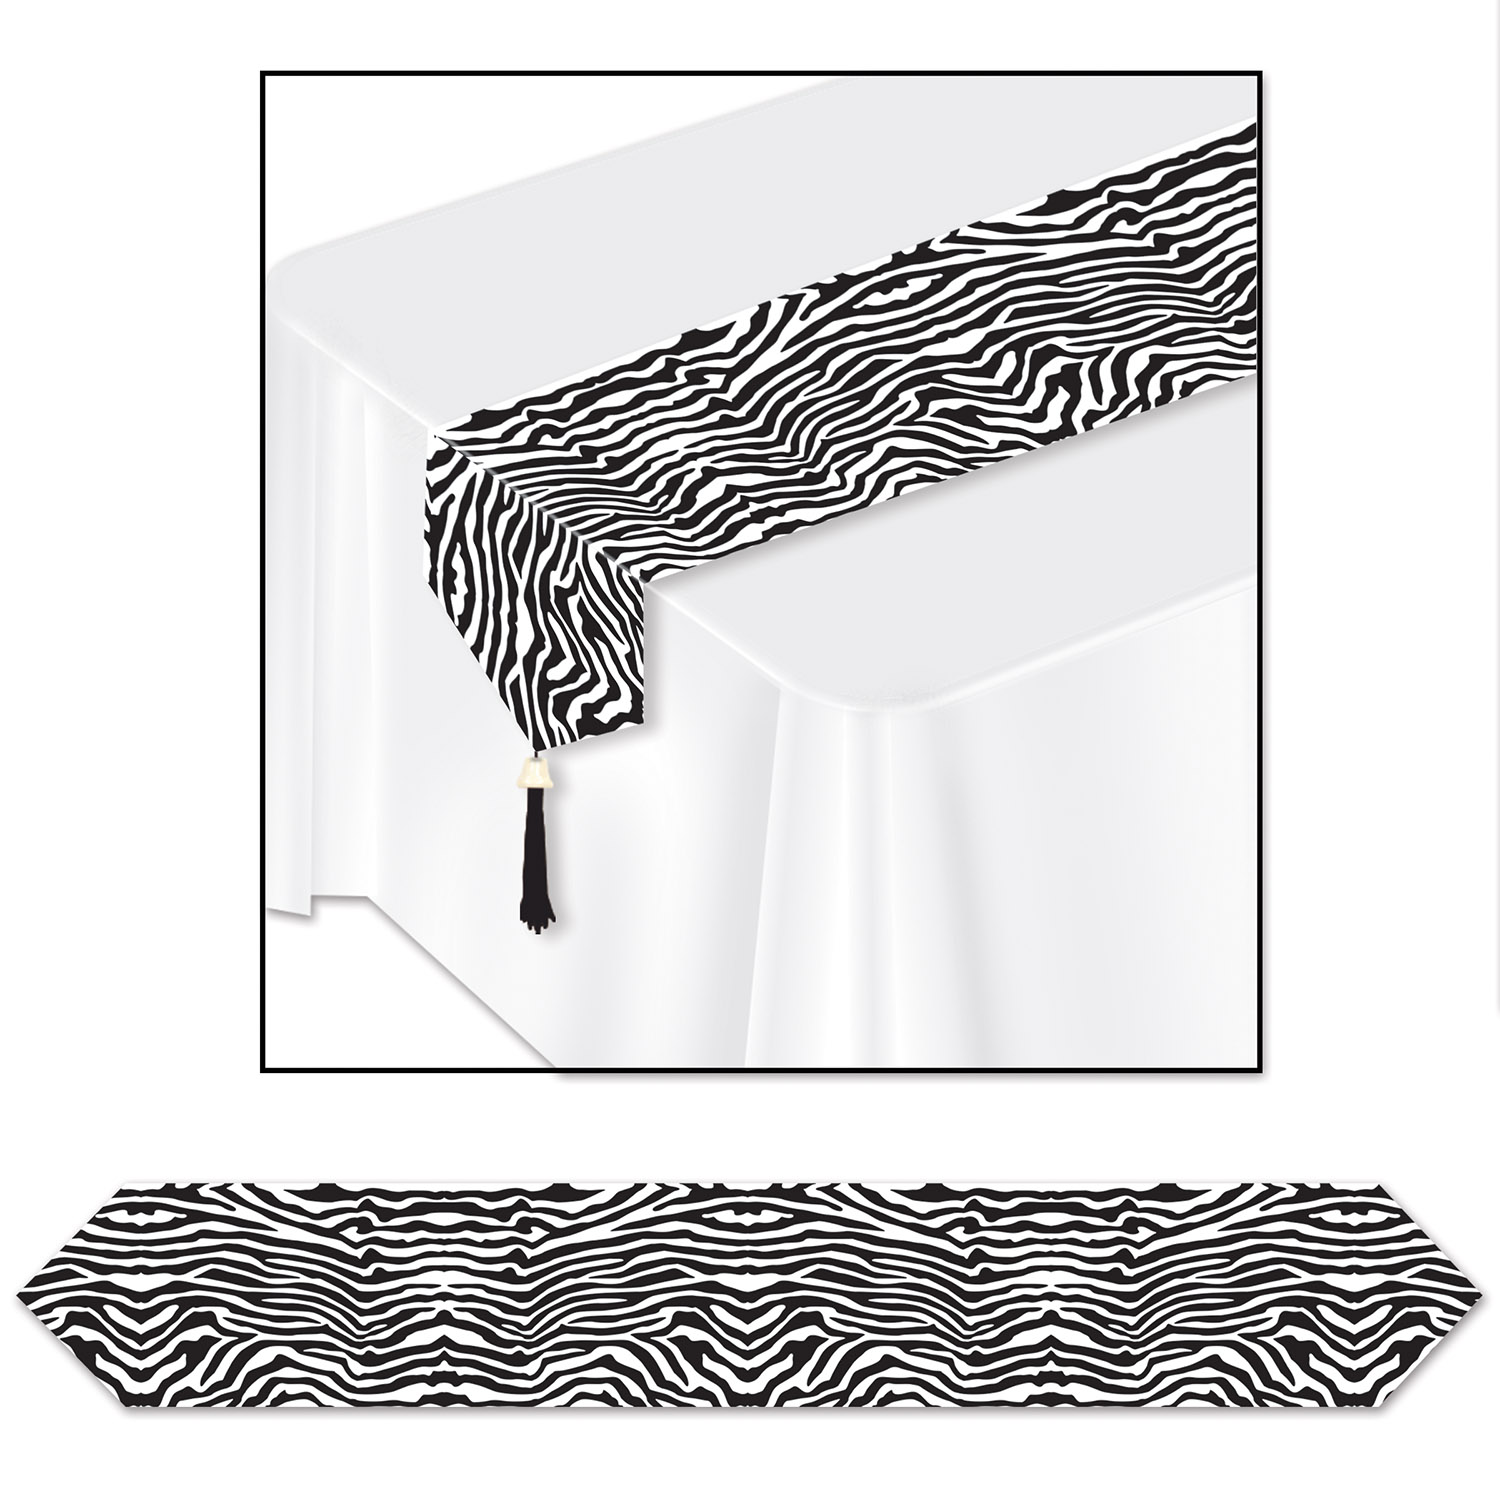 Printed Zebra Print Table Runner (Pack of 12) Printed Zebra Print Table Runner, decoraiton, luau, new years eve, wholesale, inexpensive, bulk